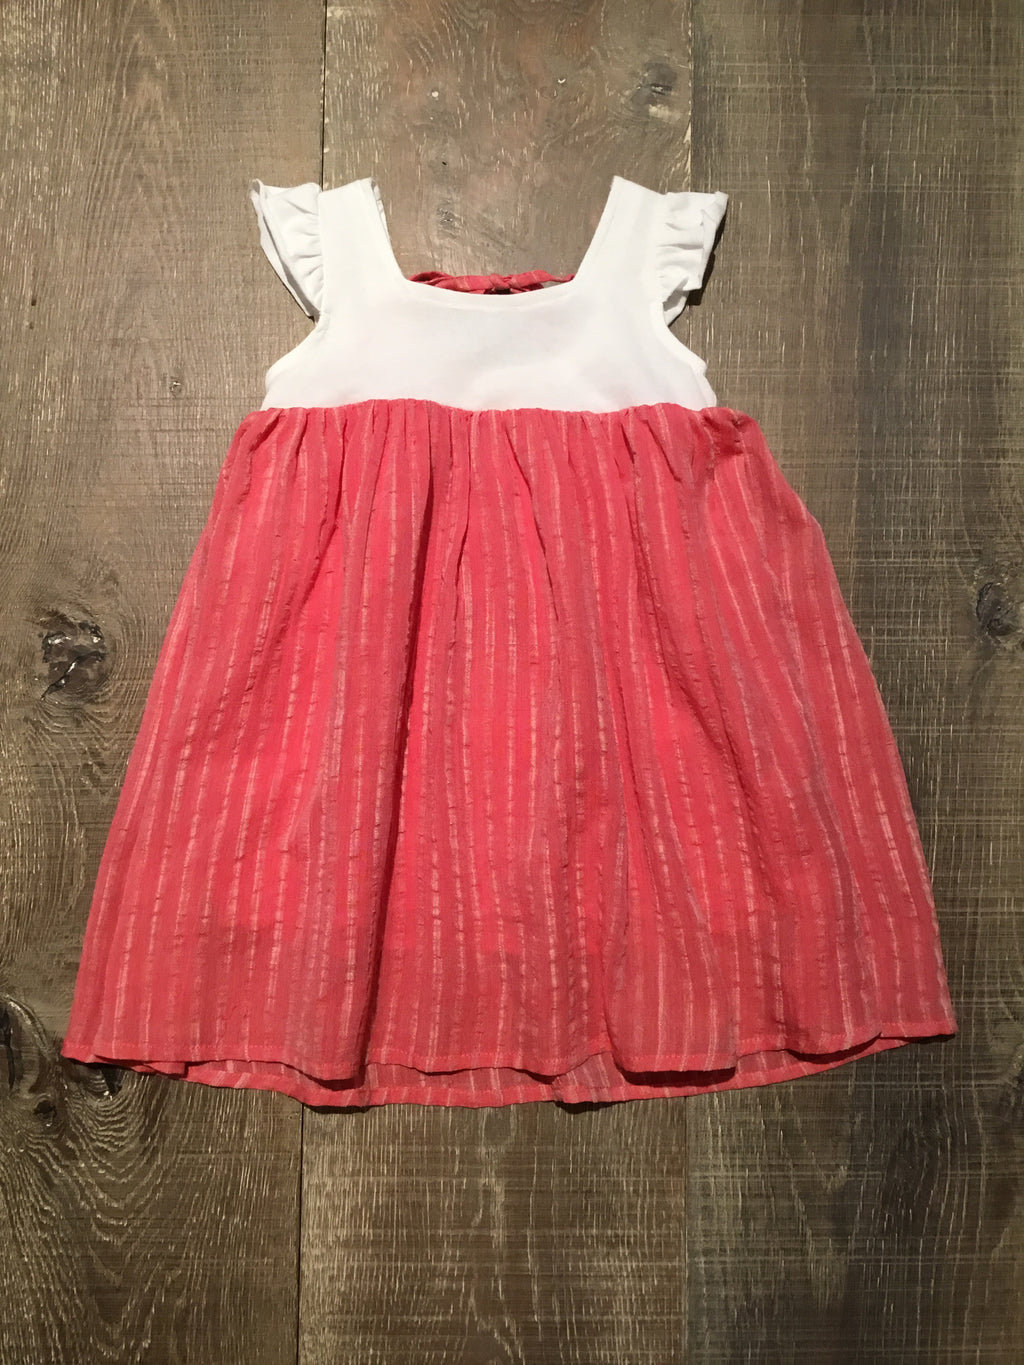 Olivia Dress in Cherry